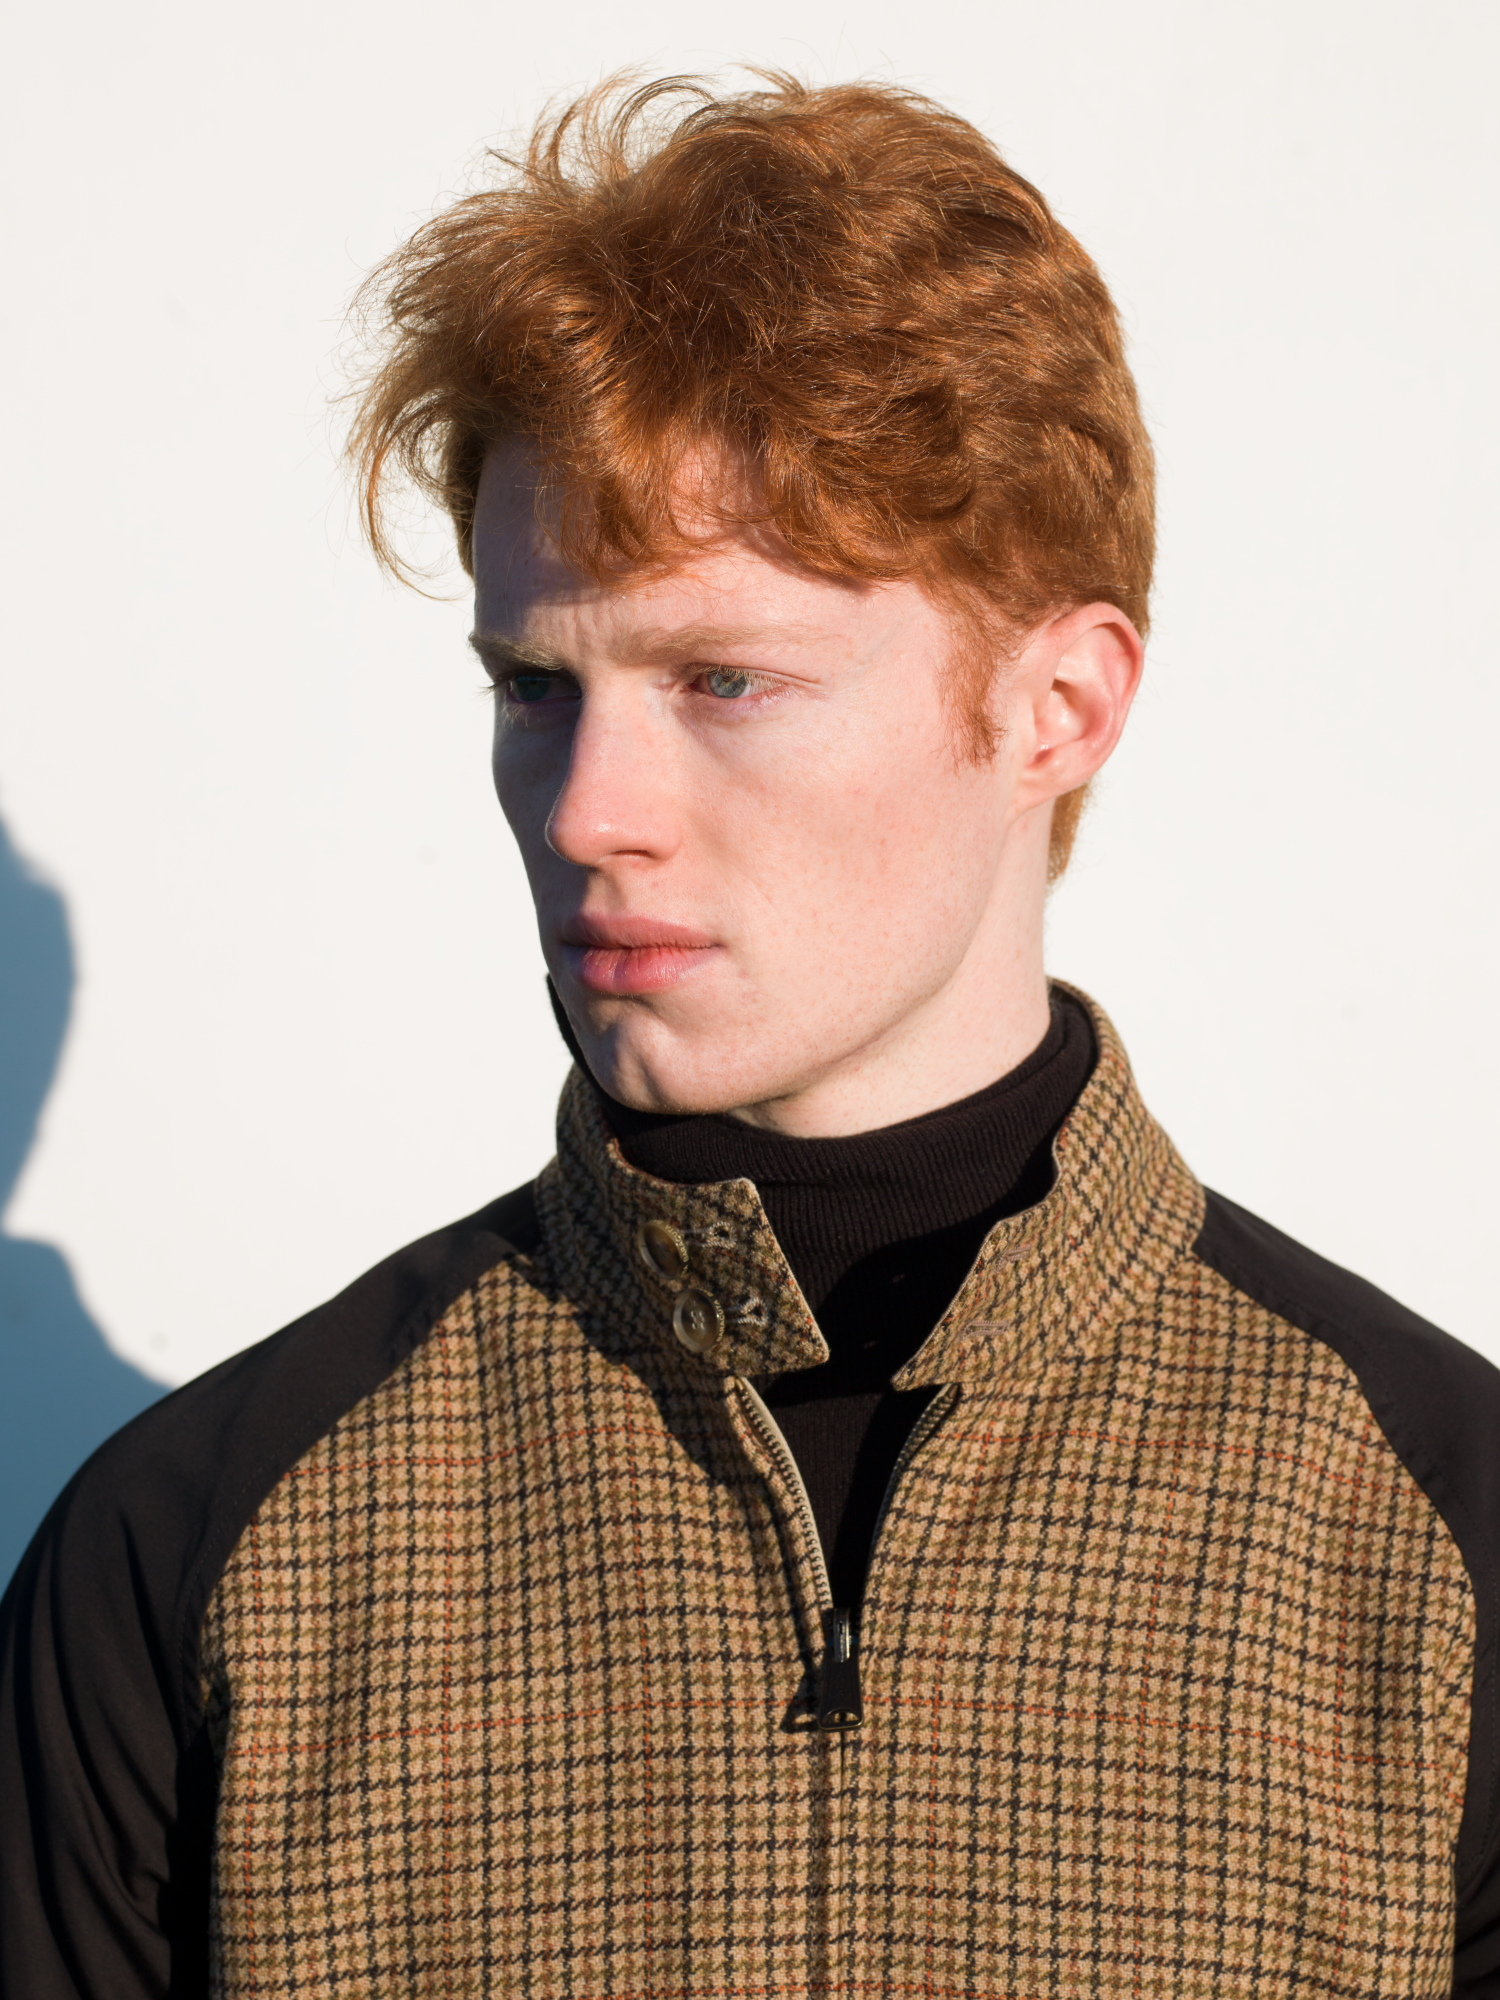 Baracuta Blue Label: AW14 Collection forecast